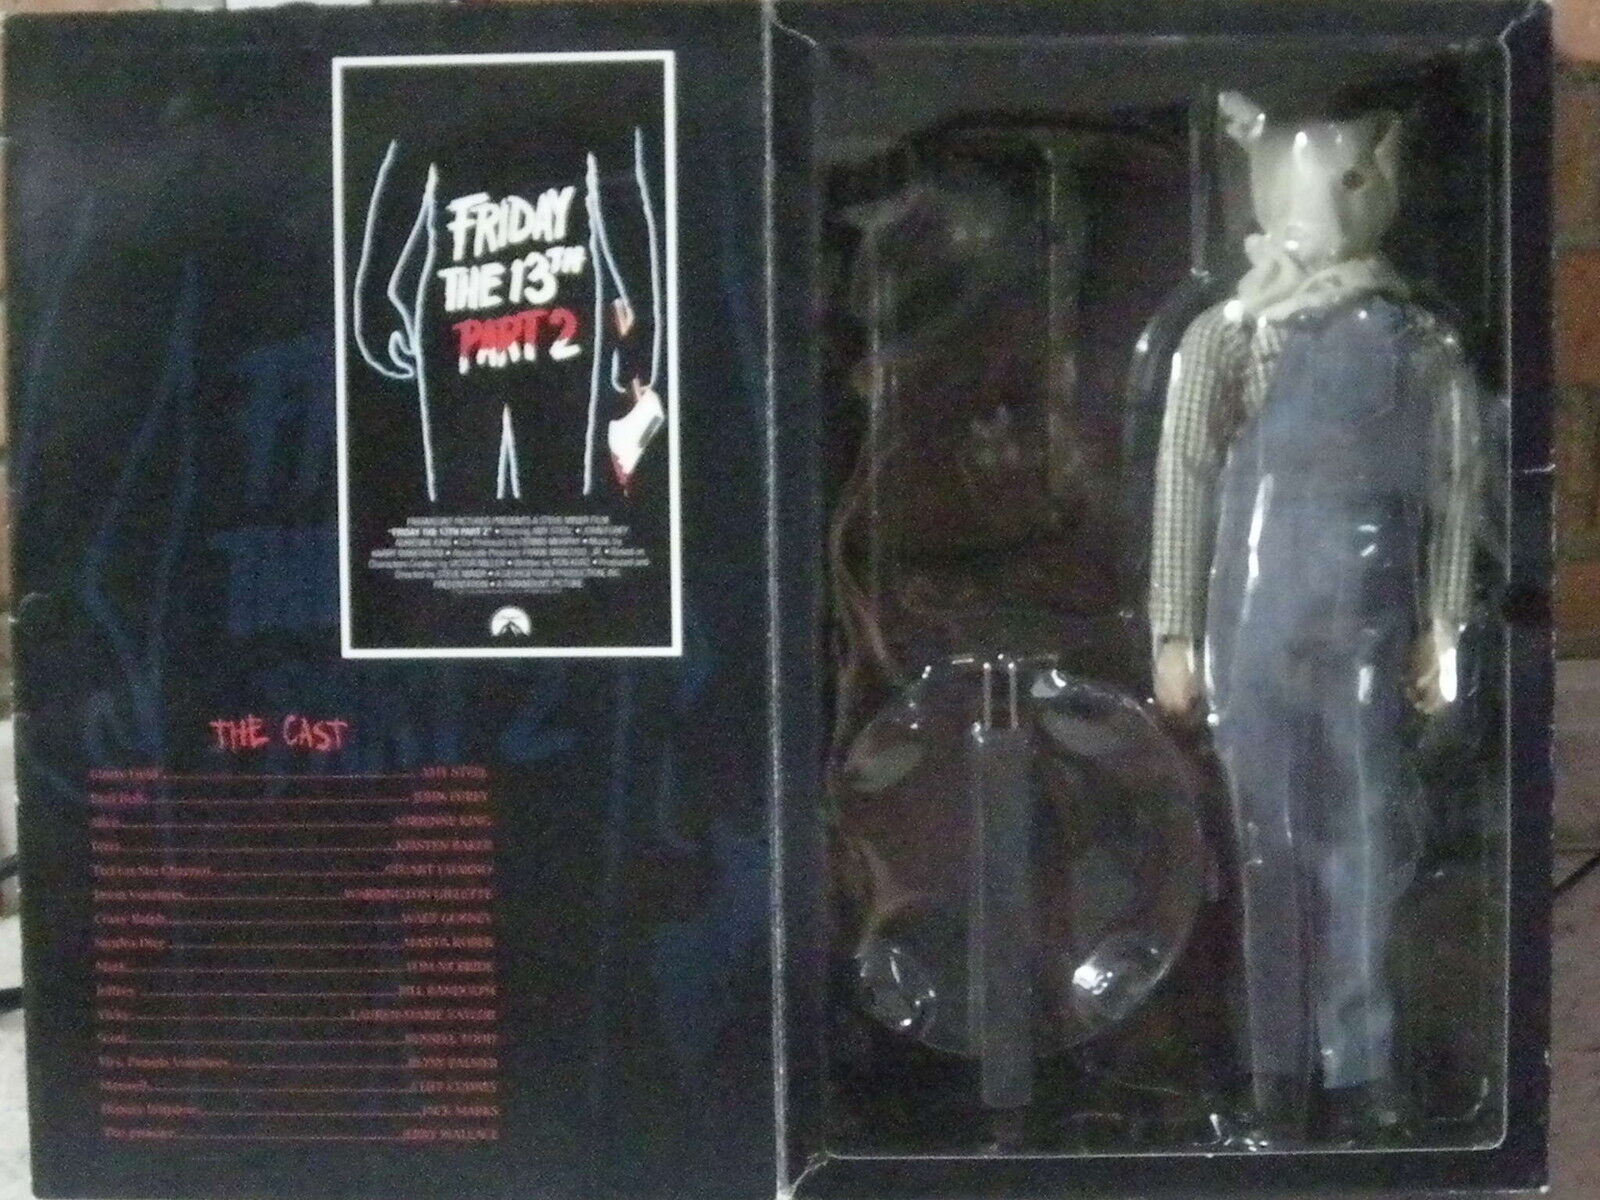 FIGURA FRIDAY THE 13TH VIERNES 13 PART 2 JASON VOORHEES FIGURE USADA BUEN ESTADO